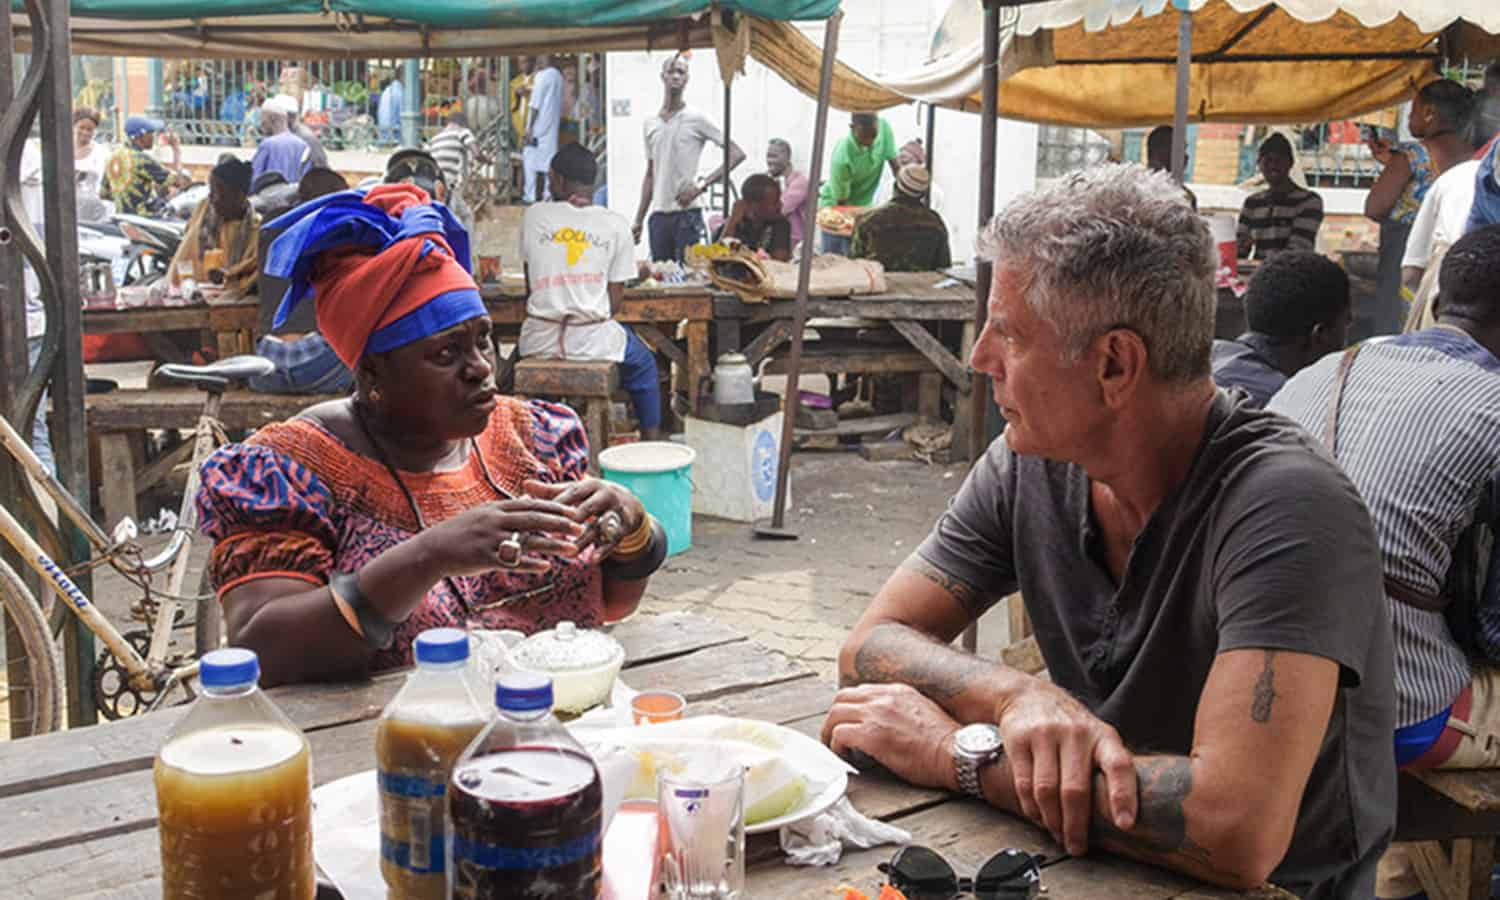 As a fearless traveler and gifted storyteller, Anthony Bourdain educated on the need for food waste solutions and presented food as sources of joy, connection.